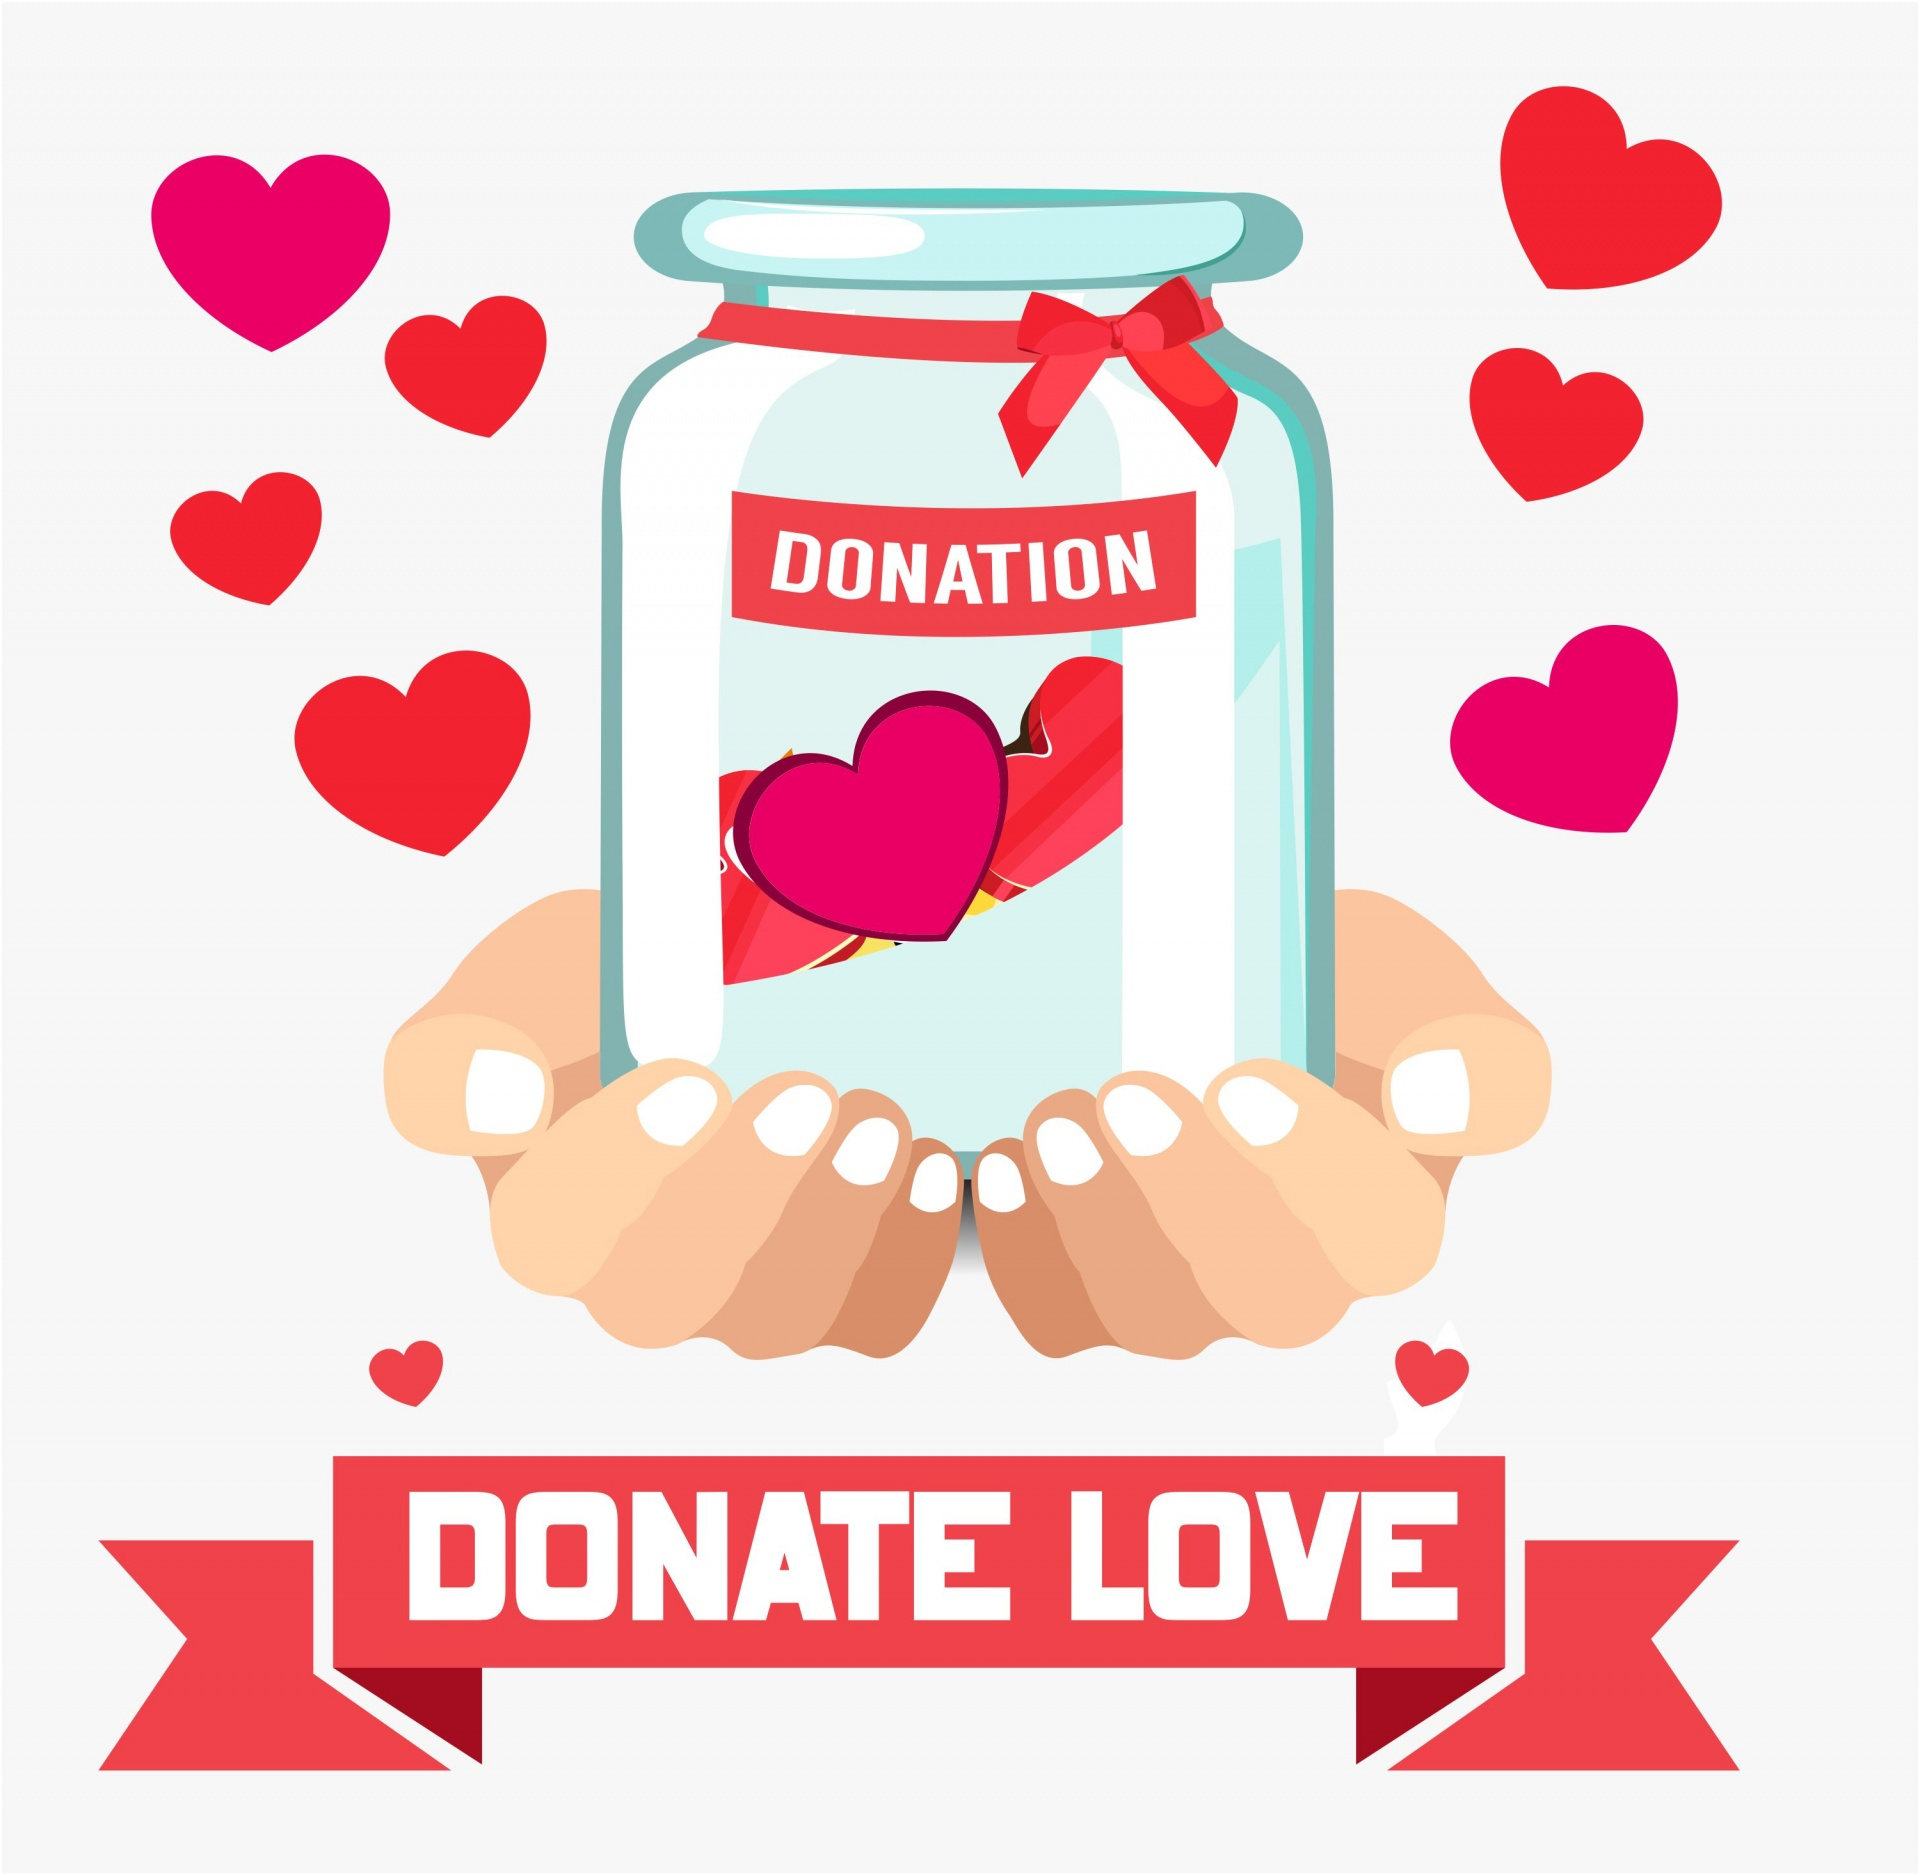 Donation of Love